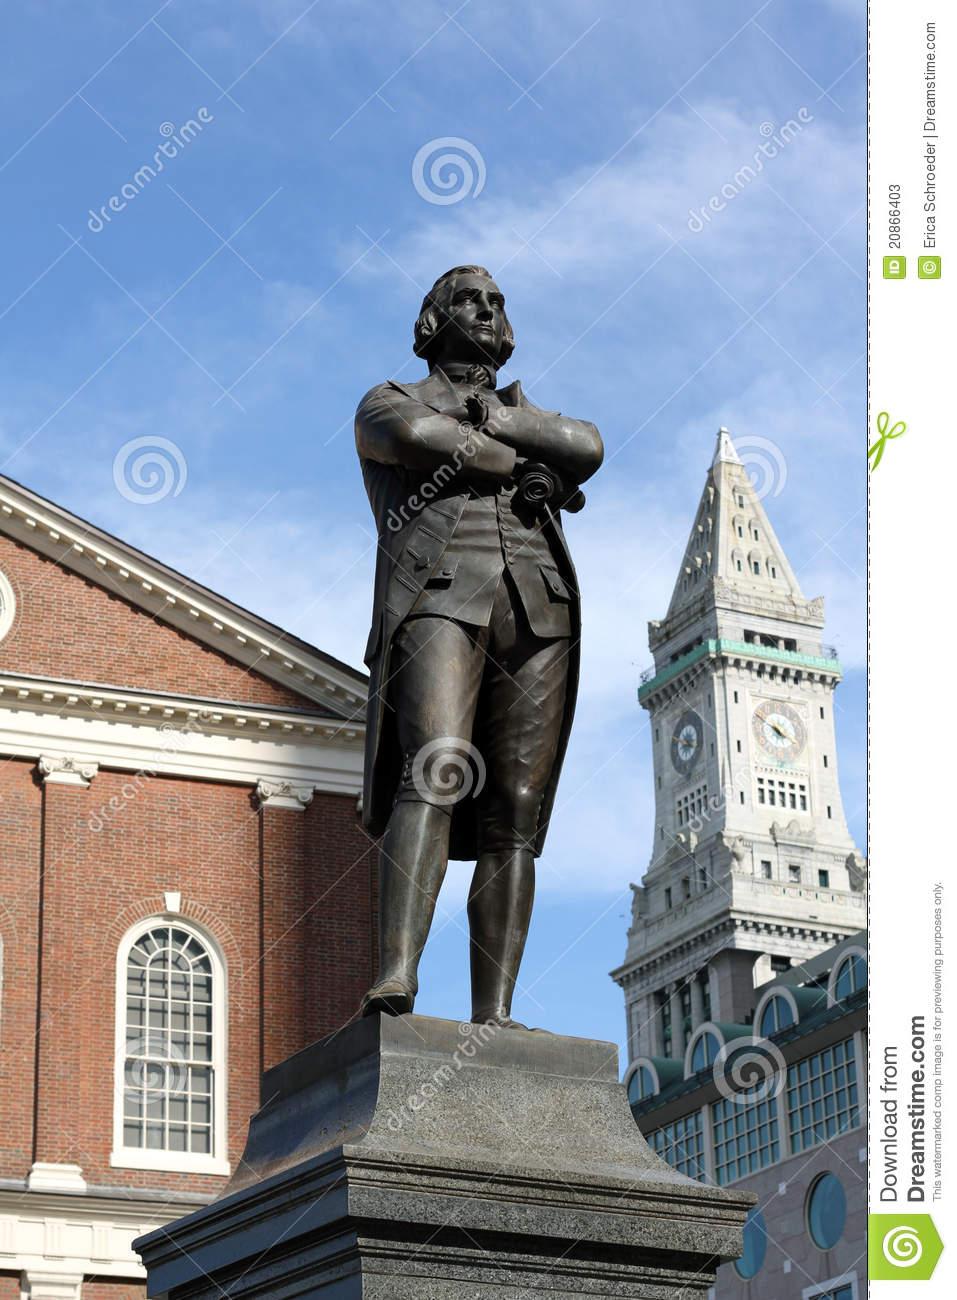 Samuel Adams Statue Boston MA Stock Photos - Image: 20866403